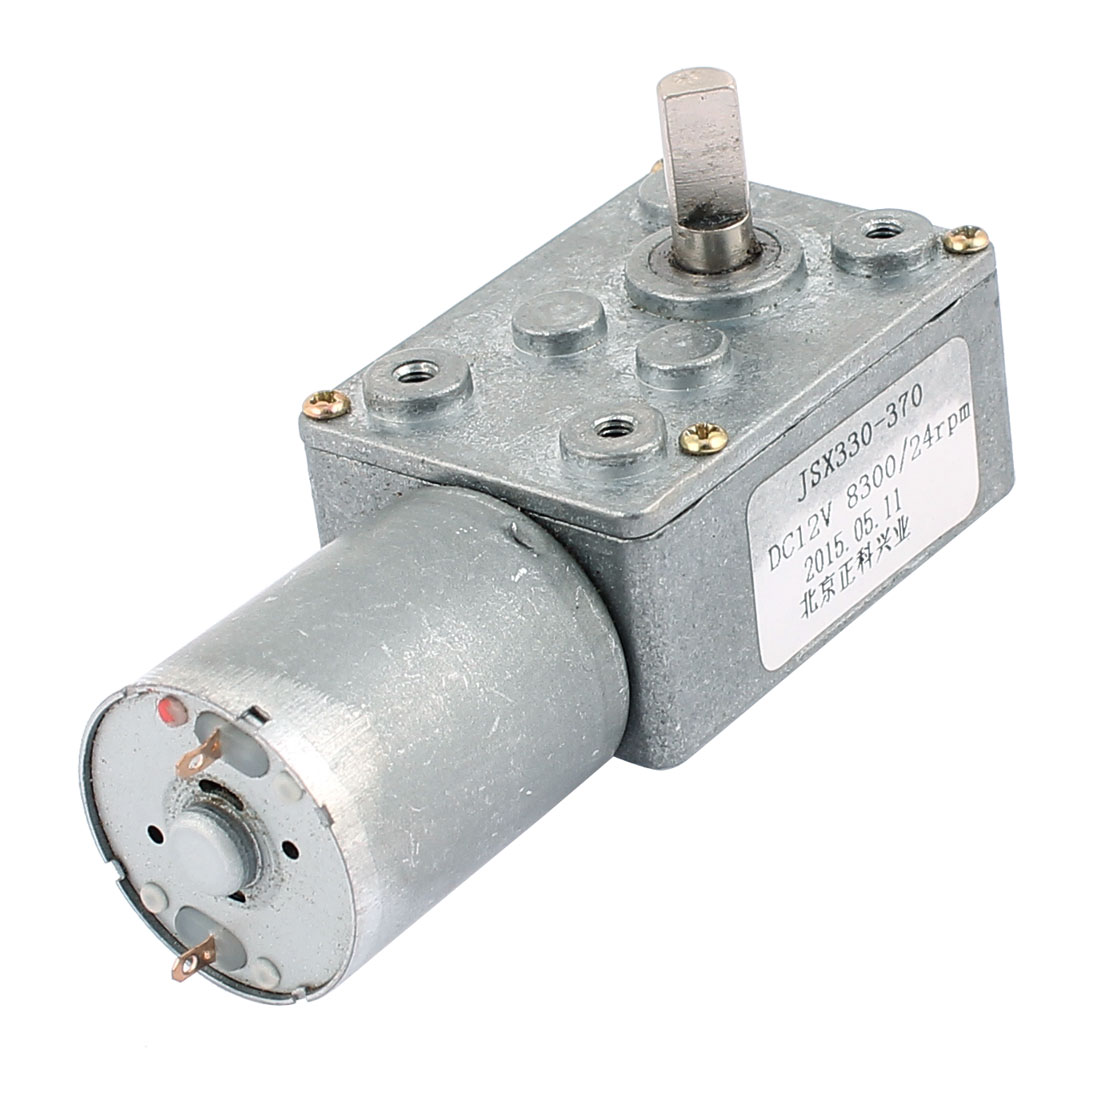 DC 12V 24RPM 6mmx13mm D-Shape Shaft Electric Power Turbo Worm Geared Motor